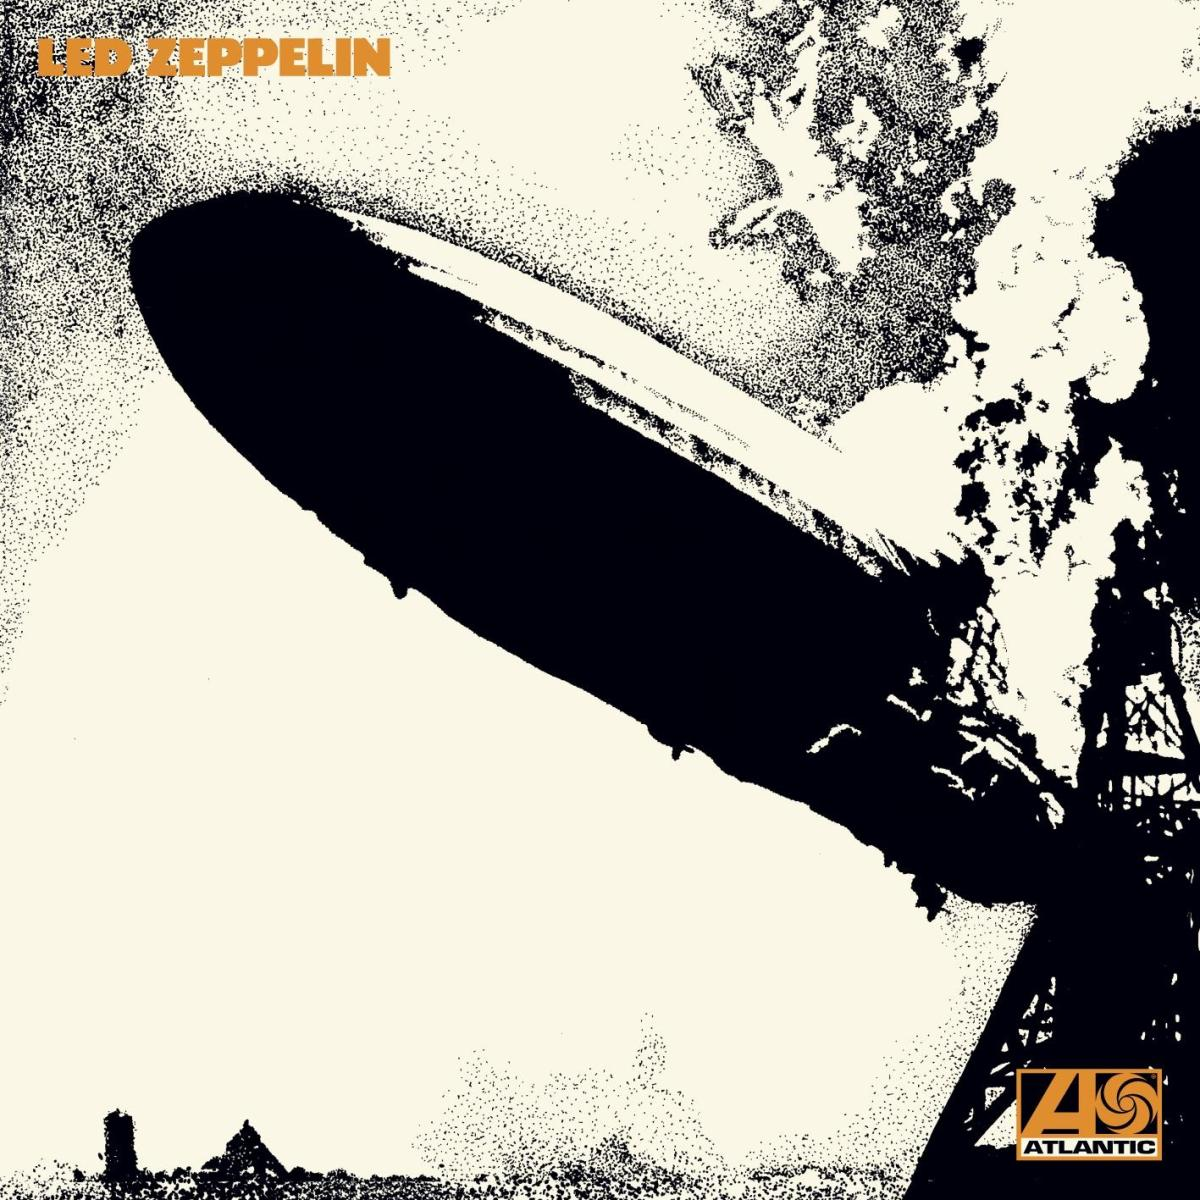 08/16/2017 - Led Zeppelin - Good Times Bad Times